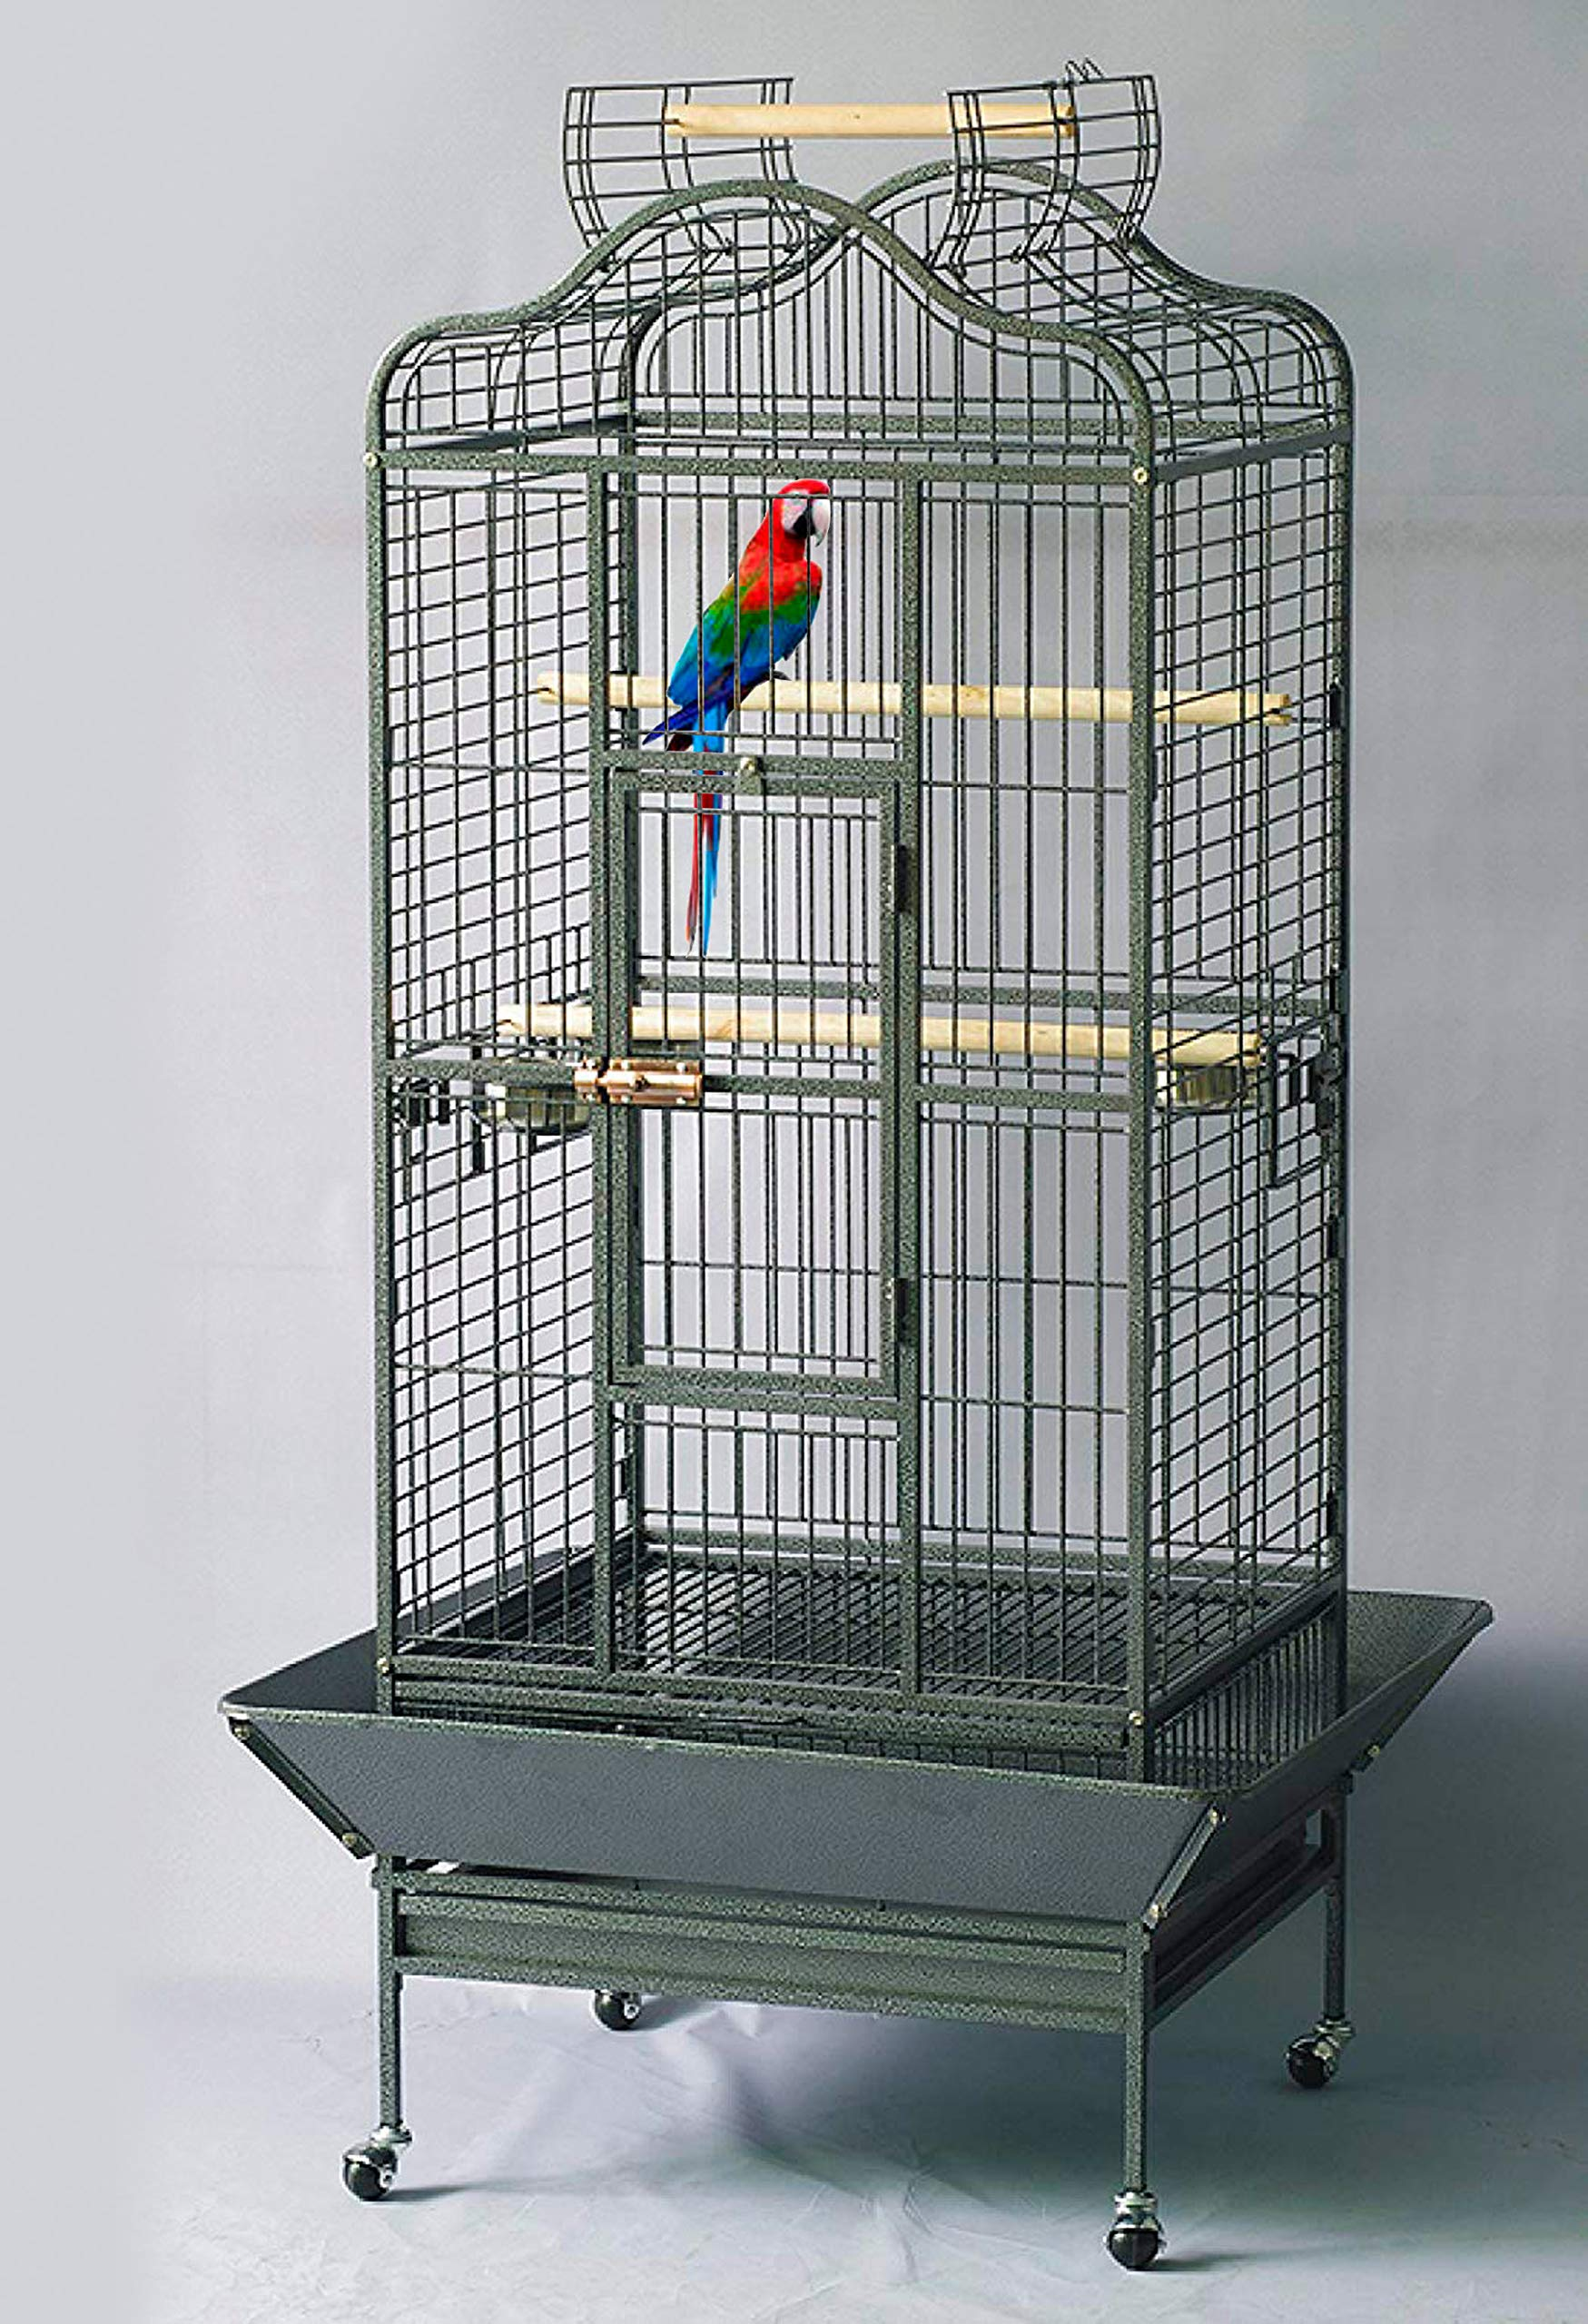 Homey Pet L24 xW22 xH61 Large Parrot Cage, Open Playtop, Black Hammer Spray by Homey Pet Station